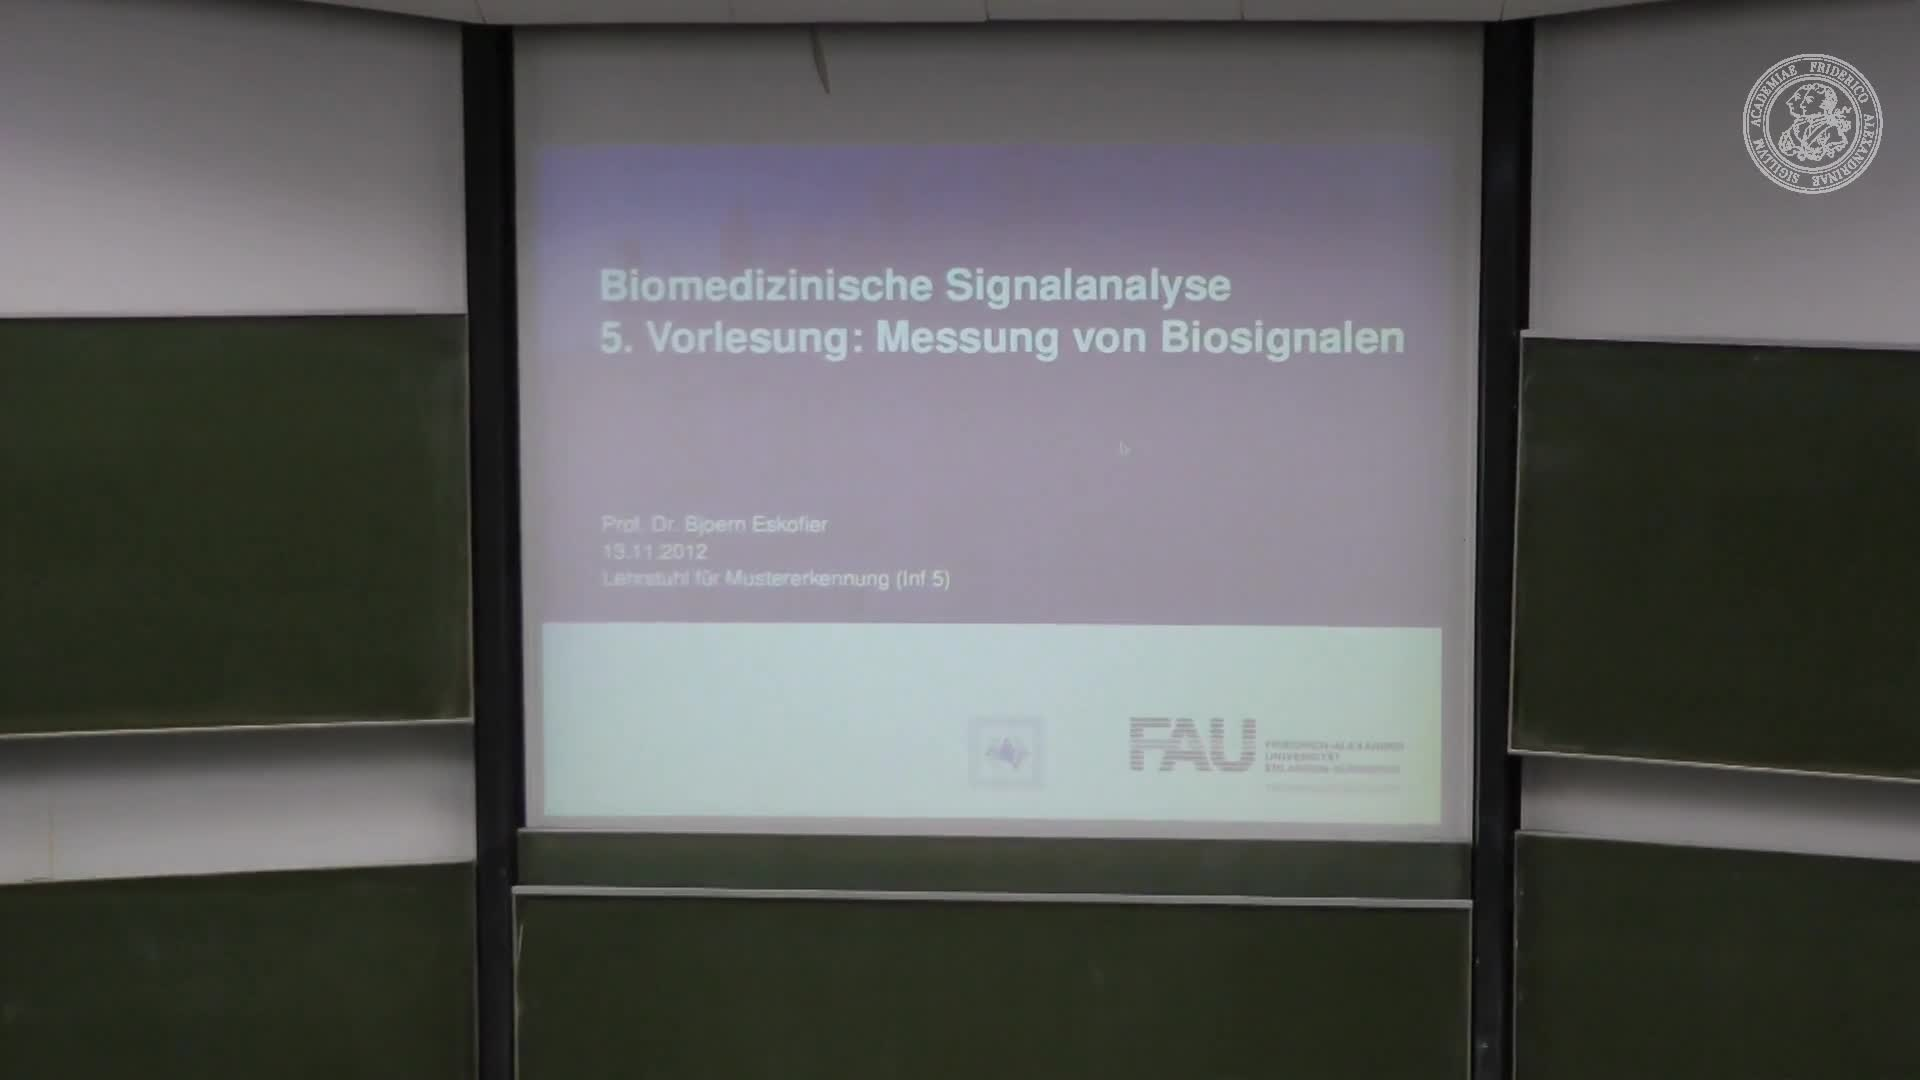 Biomedizinische Signalanalyse preview image